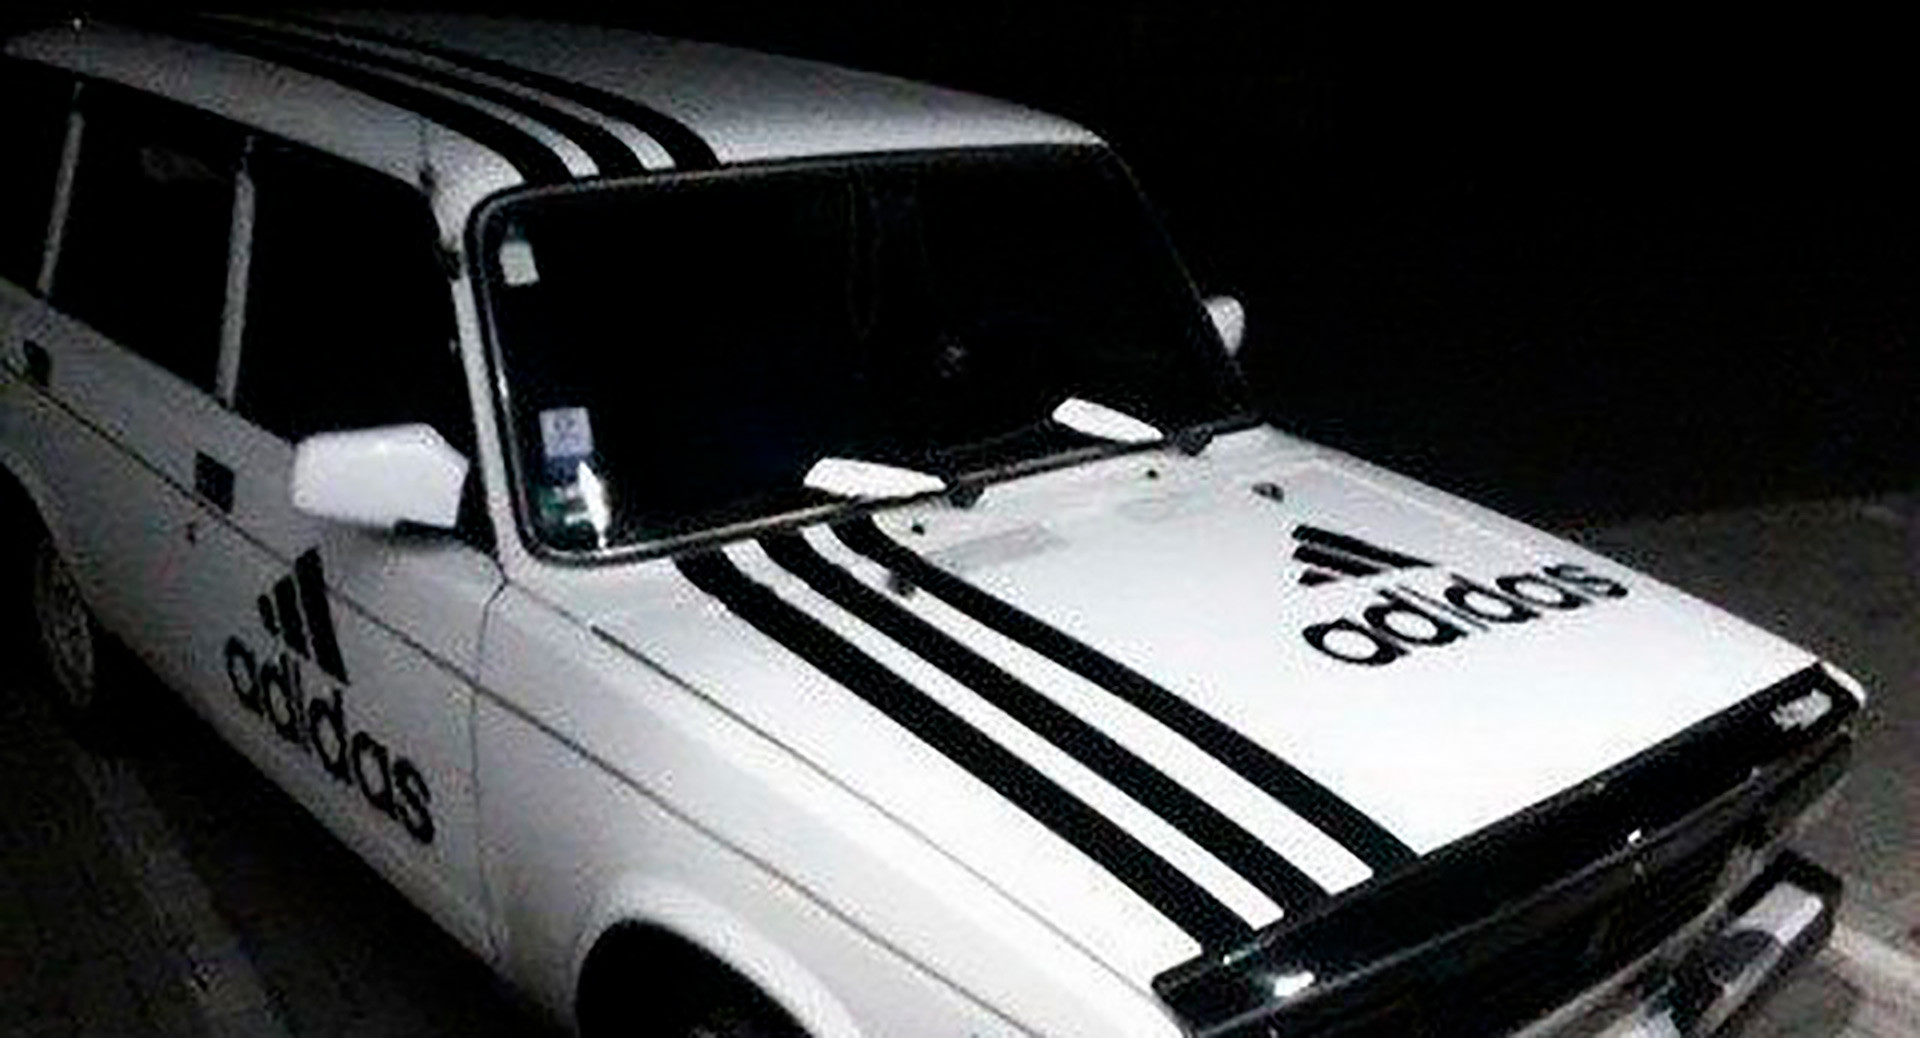 In Russia, you can put three stripes on a car...